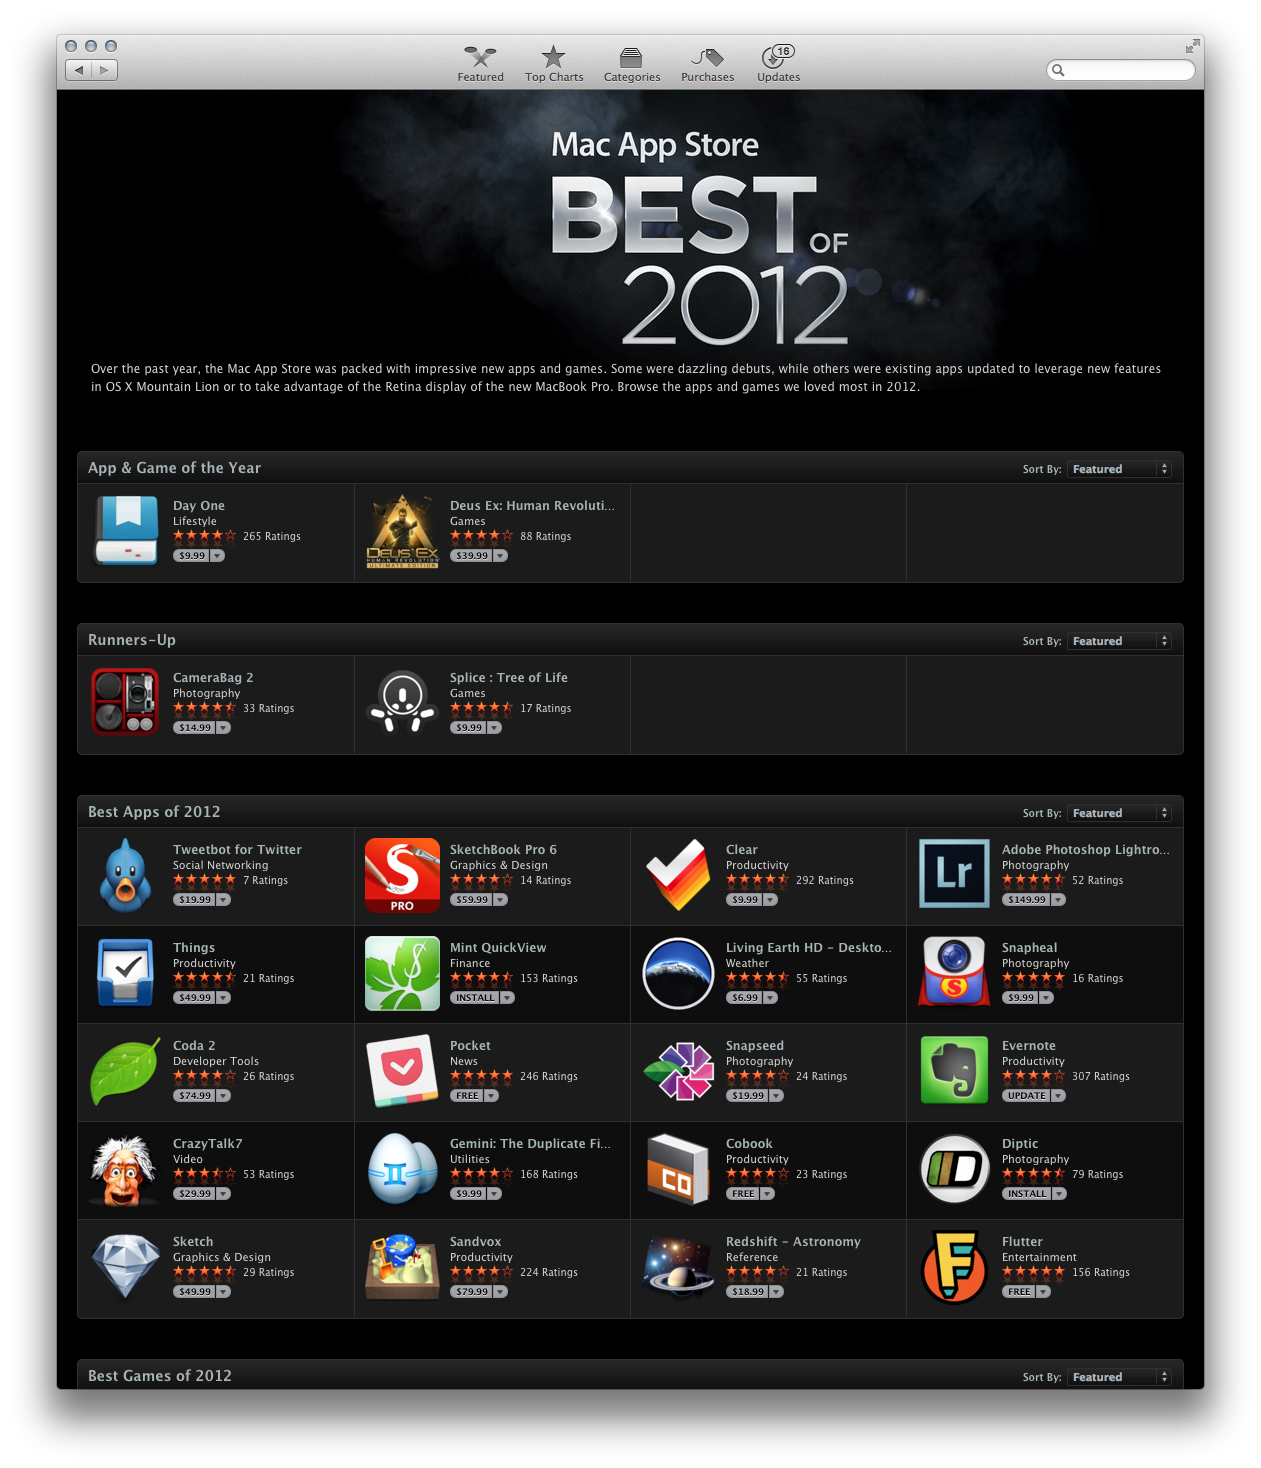 Mac App Store — Best of 2012